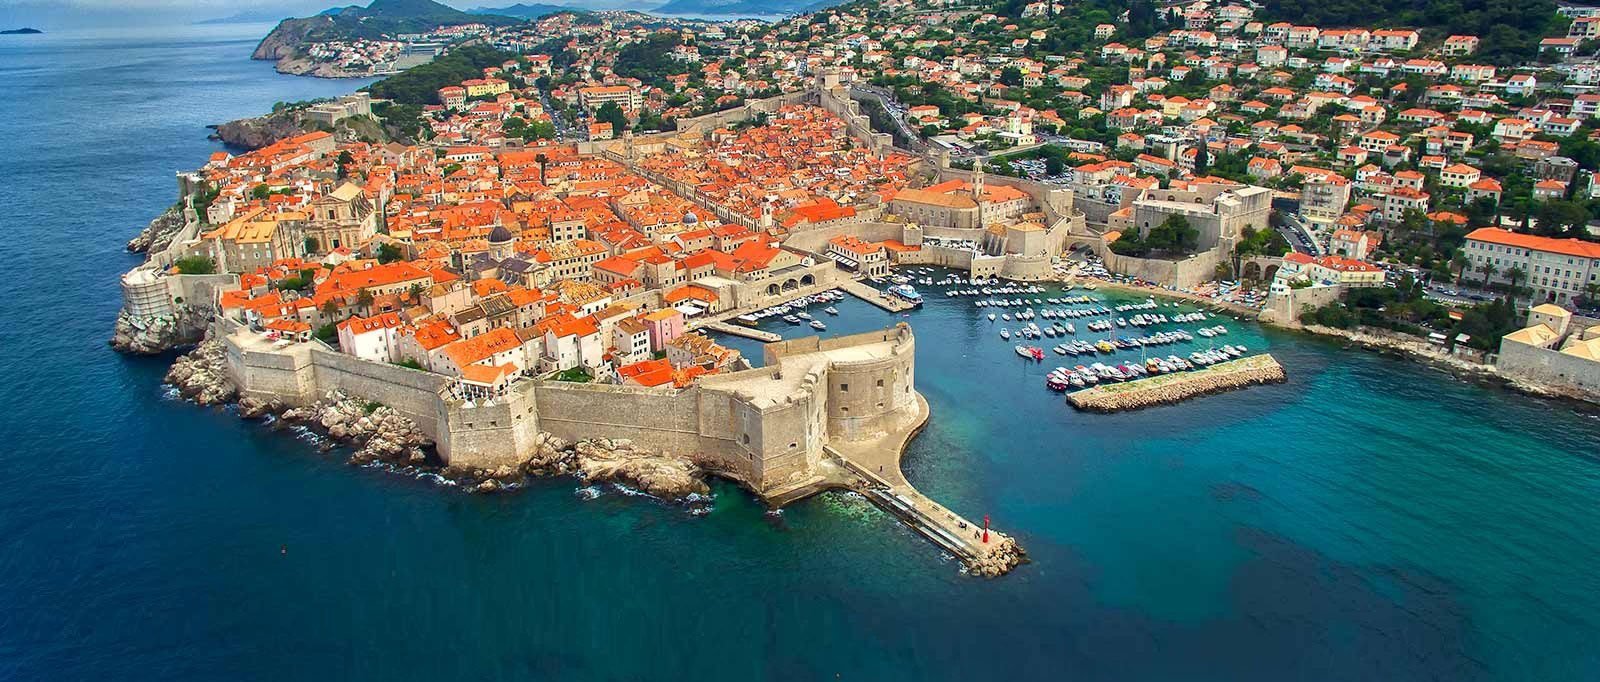 accomoodation-in-dubrovnik-featured-image-5